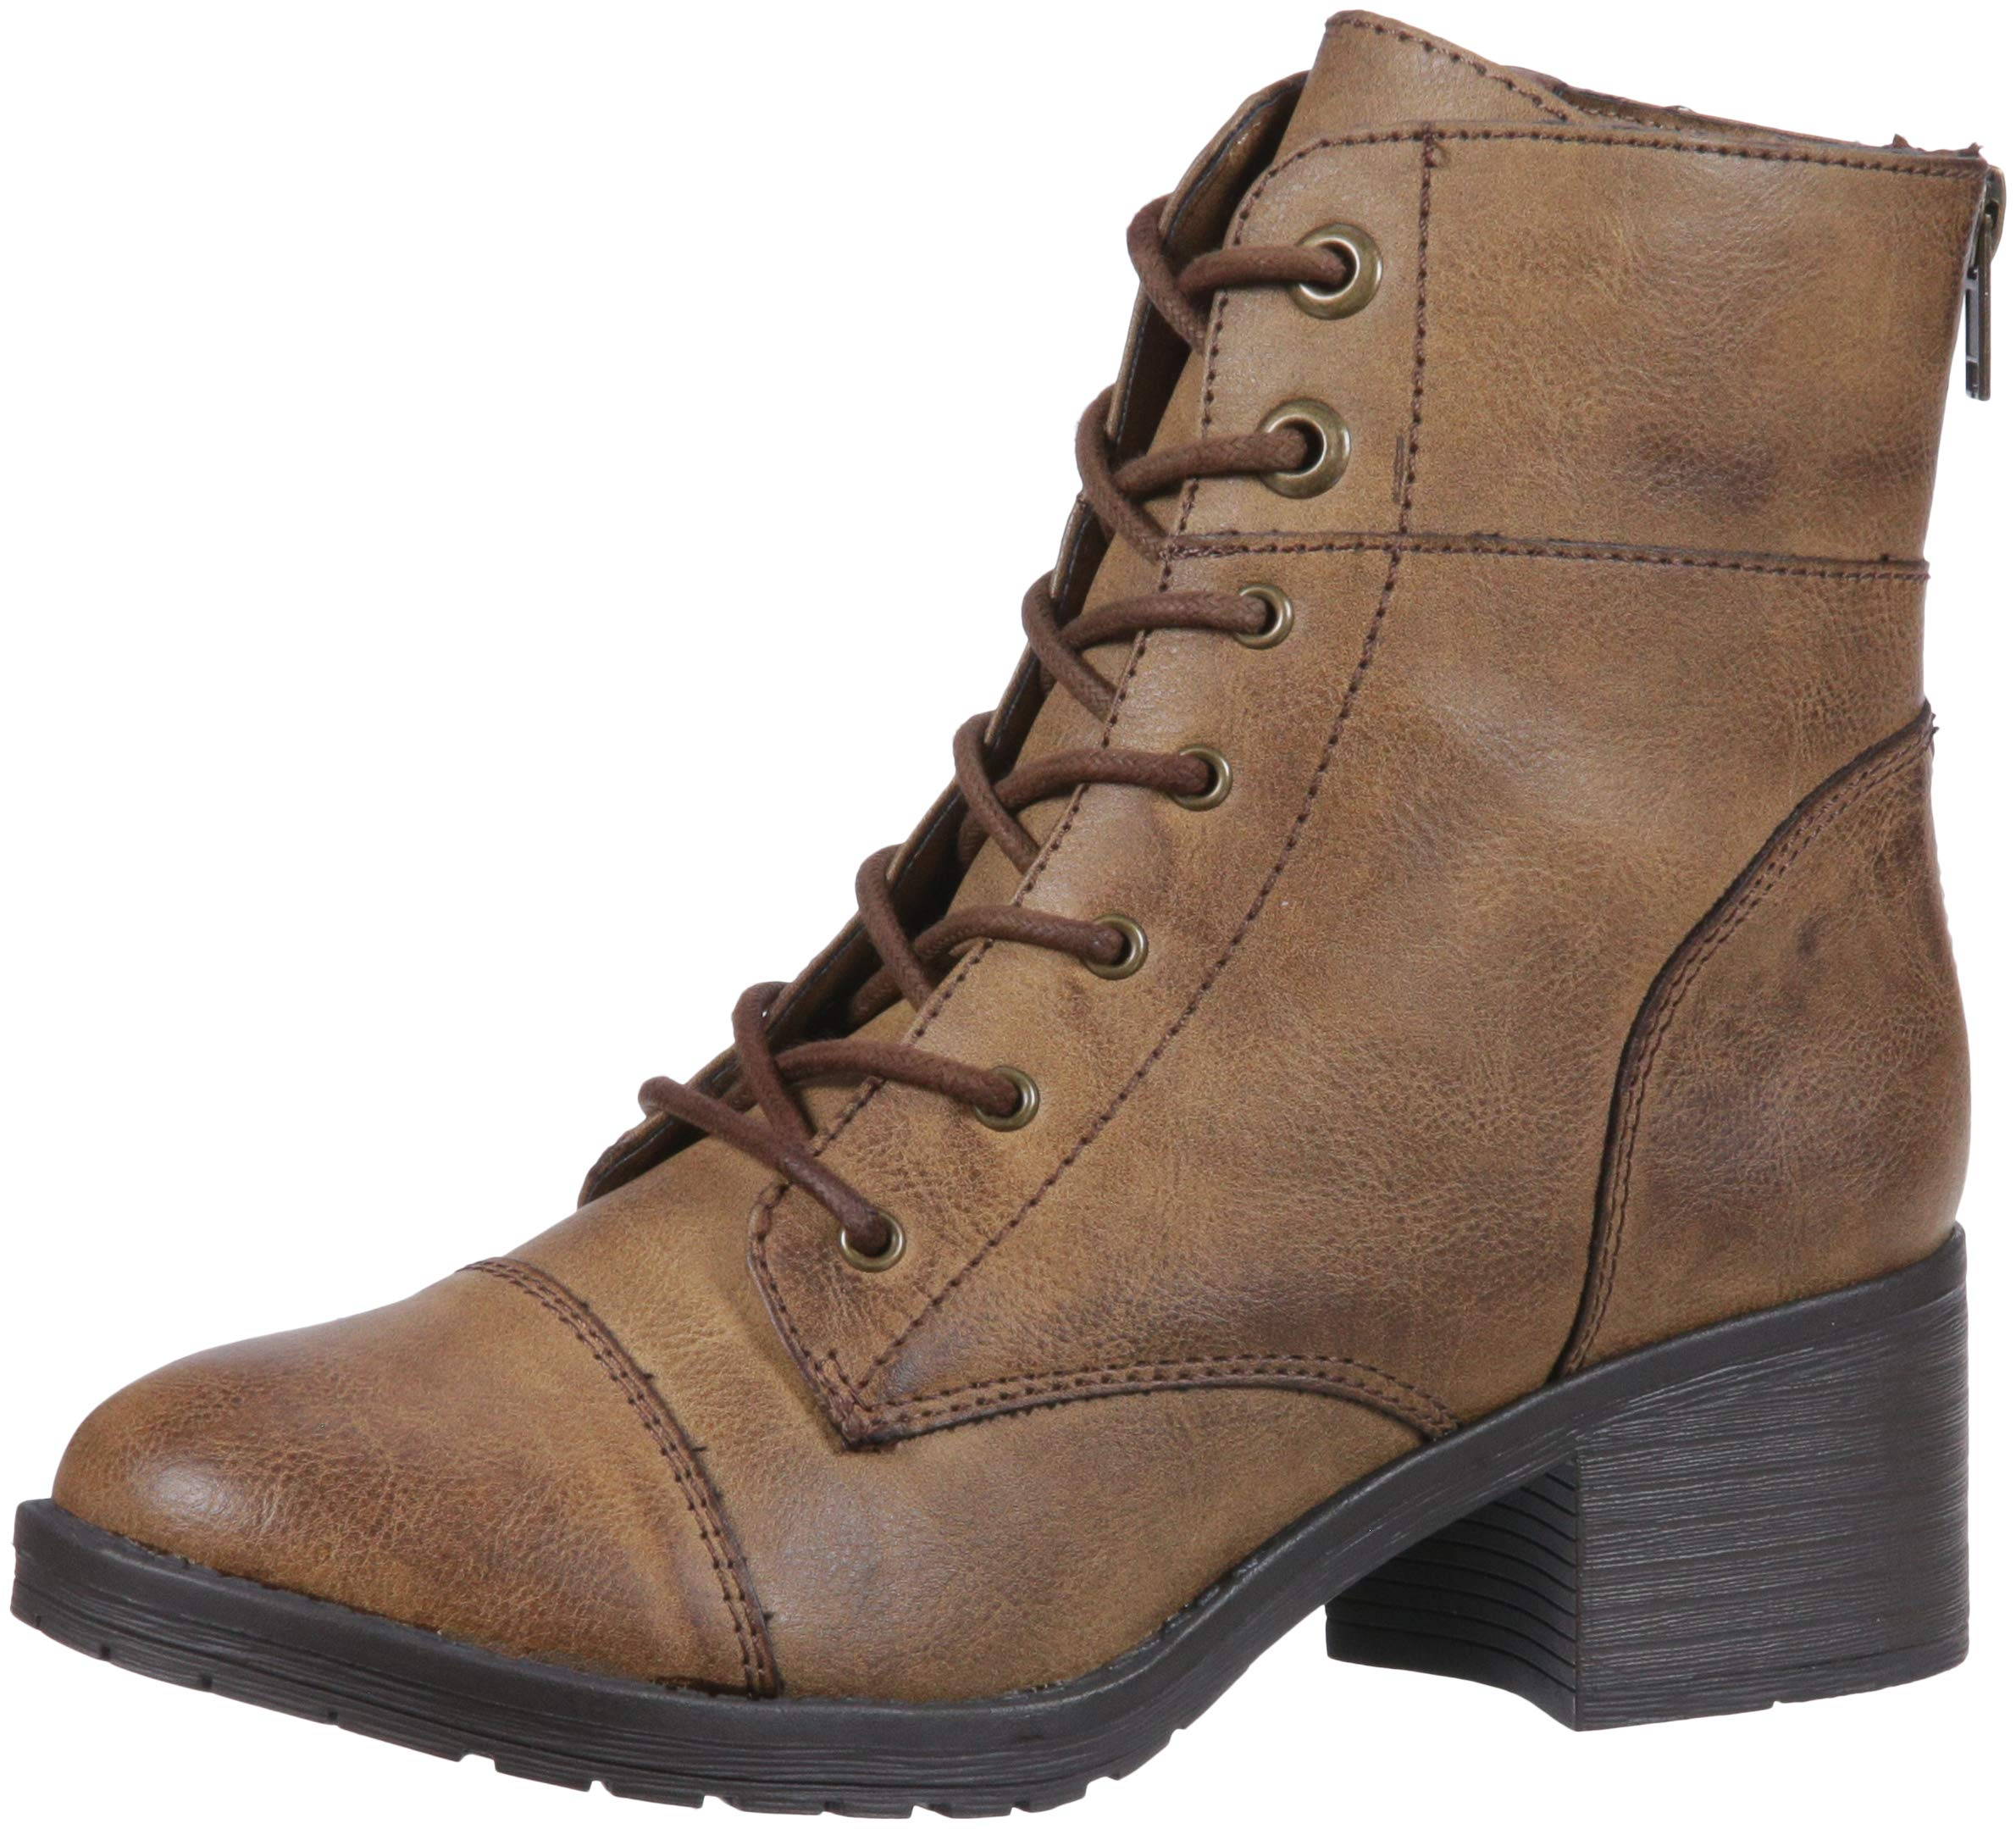 Rampage Women's Krista Lace-up Chunky Heel Bootie Combat Boot, Brown Smooth, 7 M US